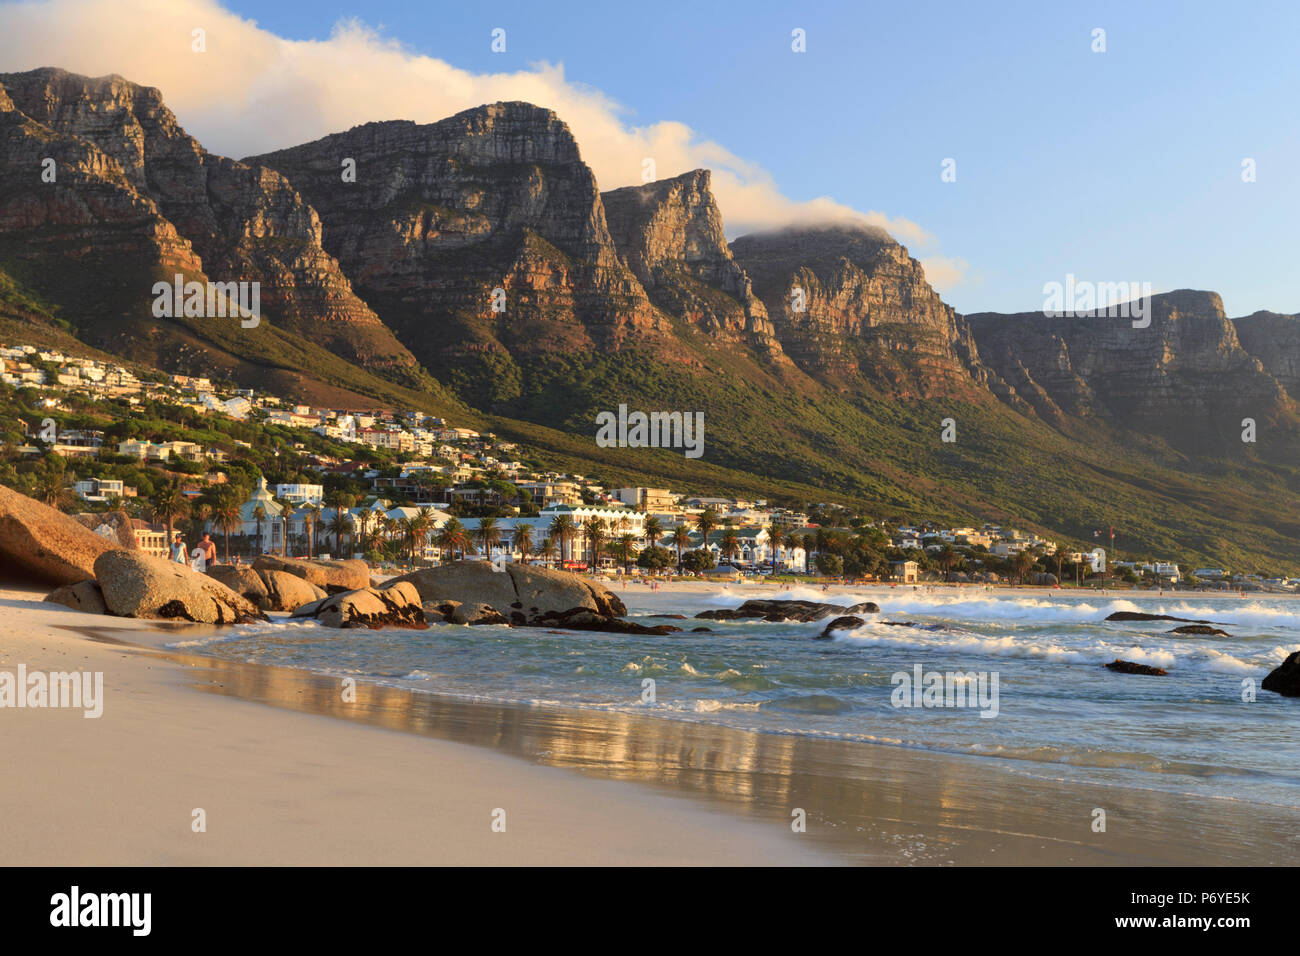 Sud Africa, Western Cape, Cape Town, Camps Bay Foto Stock